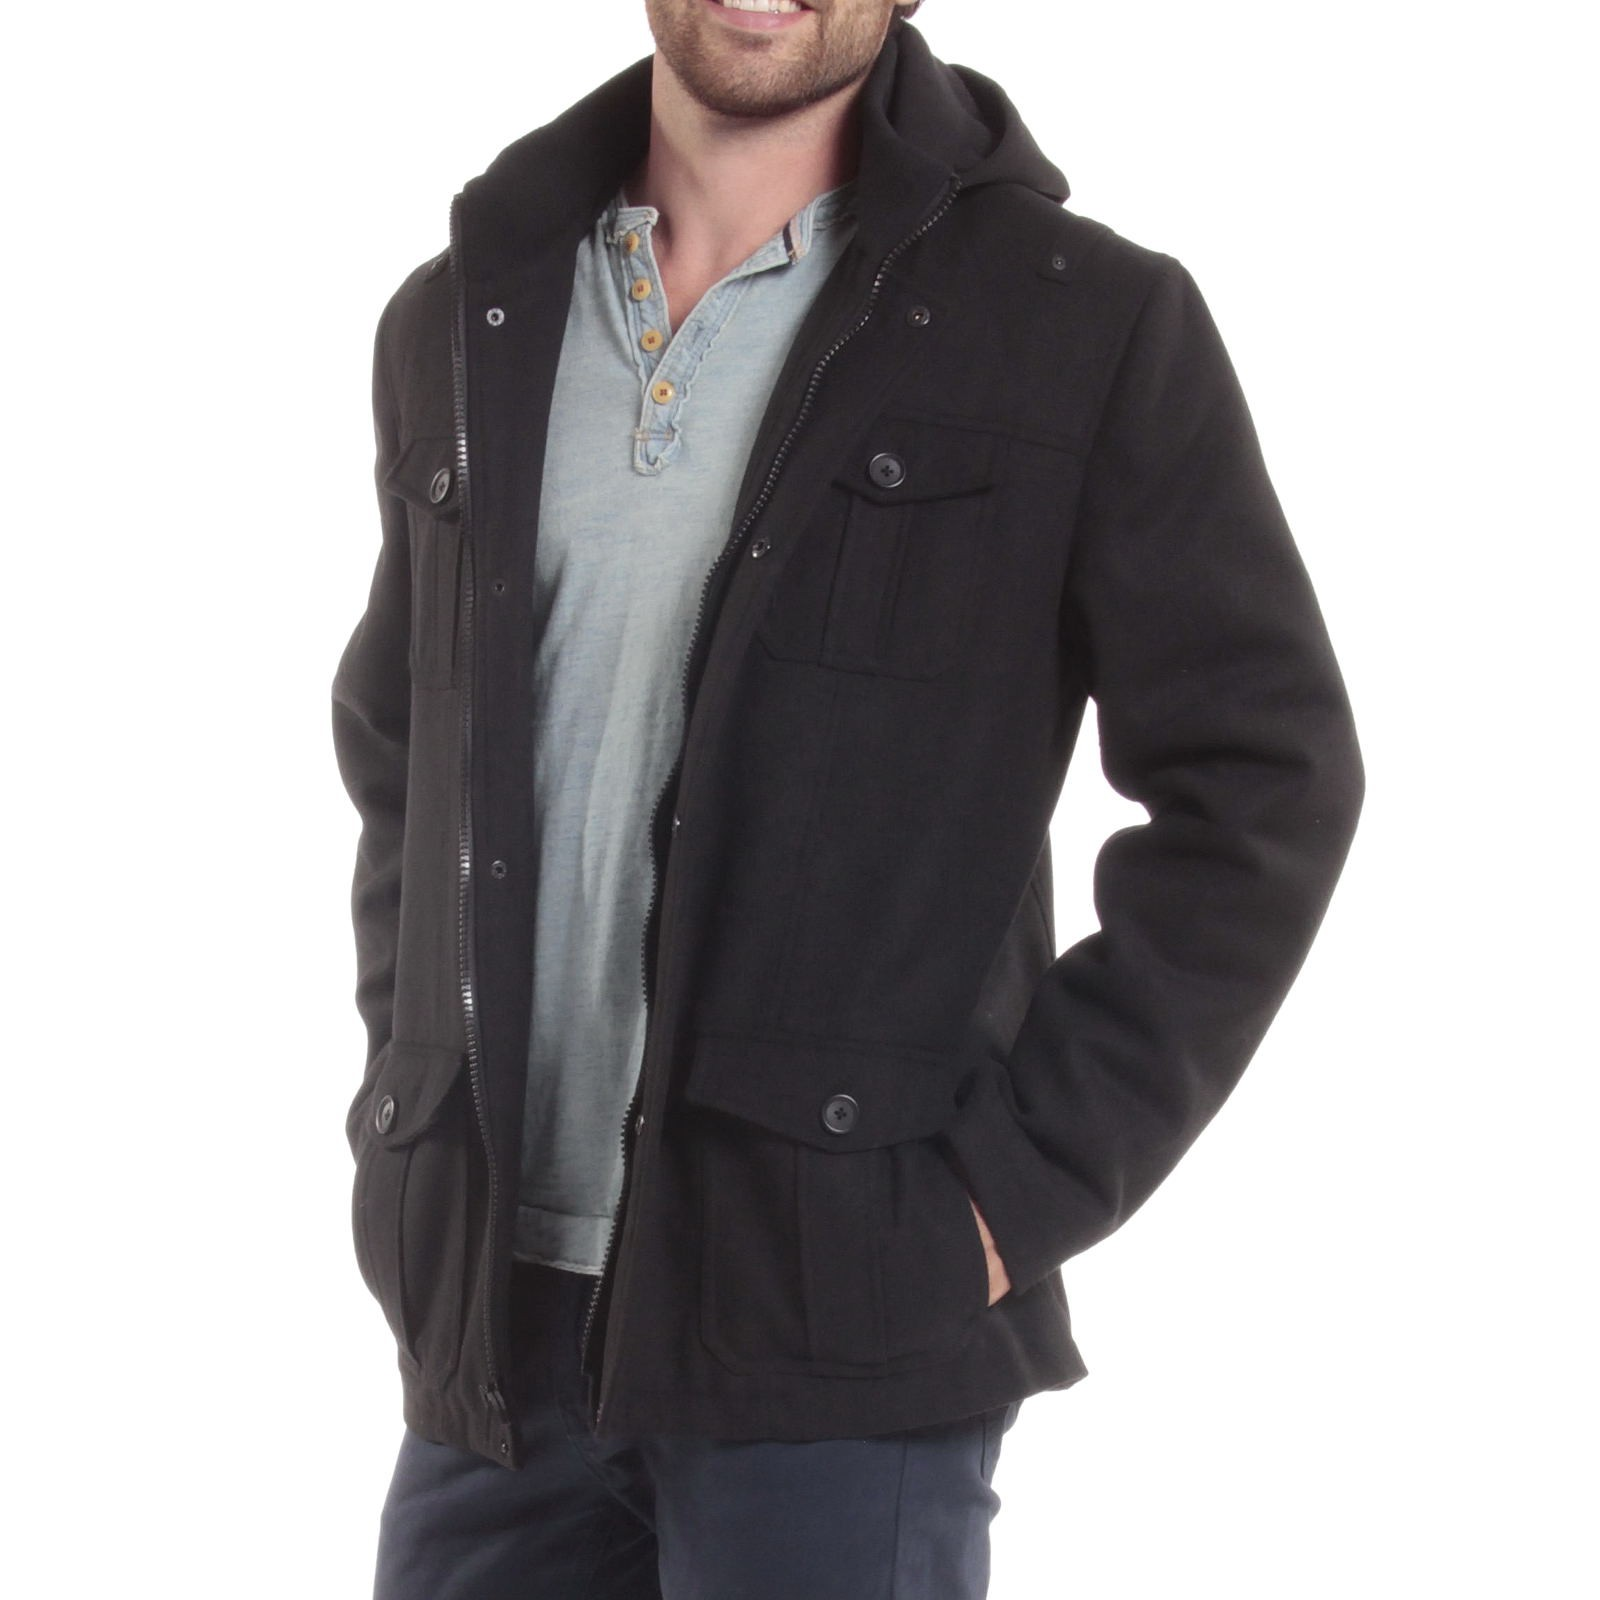 Alpine-Swiss-Noah-Mens-Wool-Coat-Parka-with-Removable-Hood-Jacket-Cargo-Pockets thumbnail 14